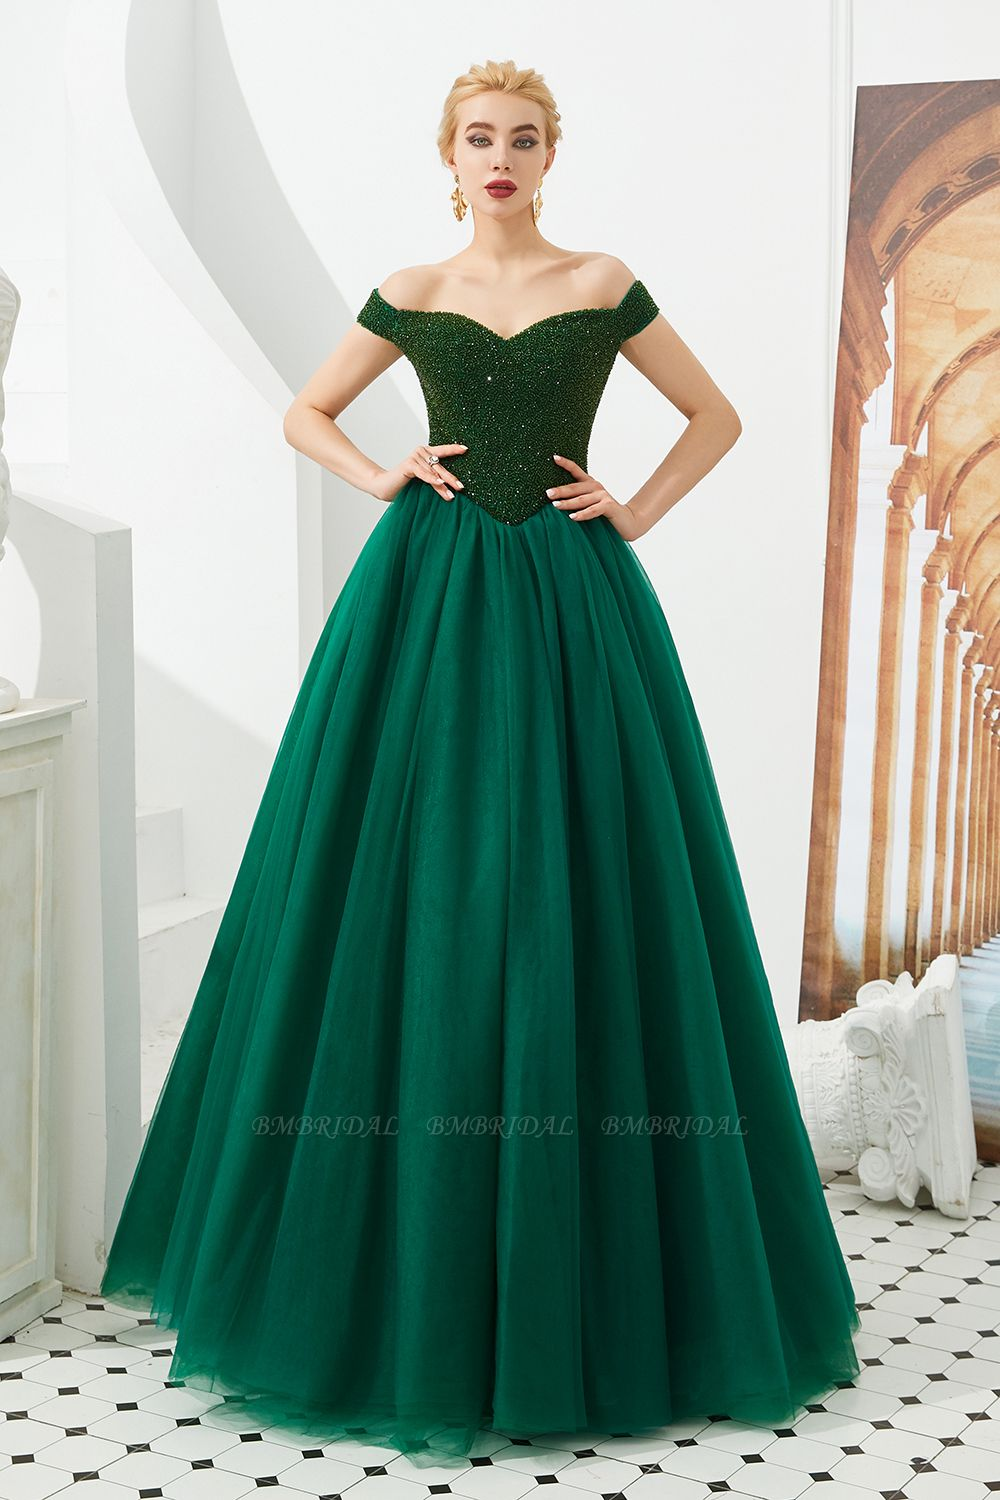 BMbridal Princess Off-the-Shoulder Prom Dress Beadings Sweetheart Ball Gown Evening Gowns